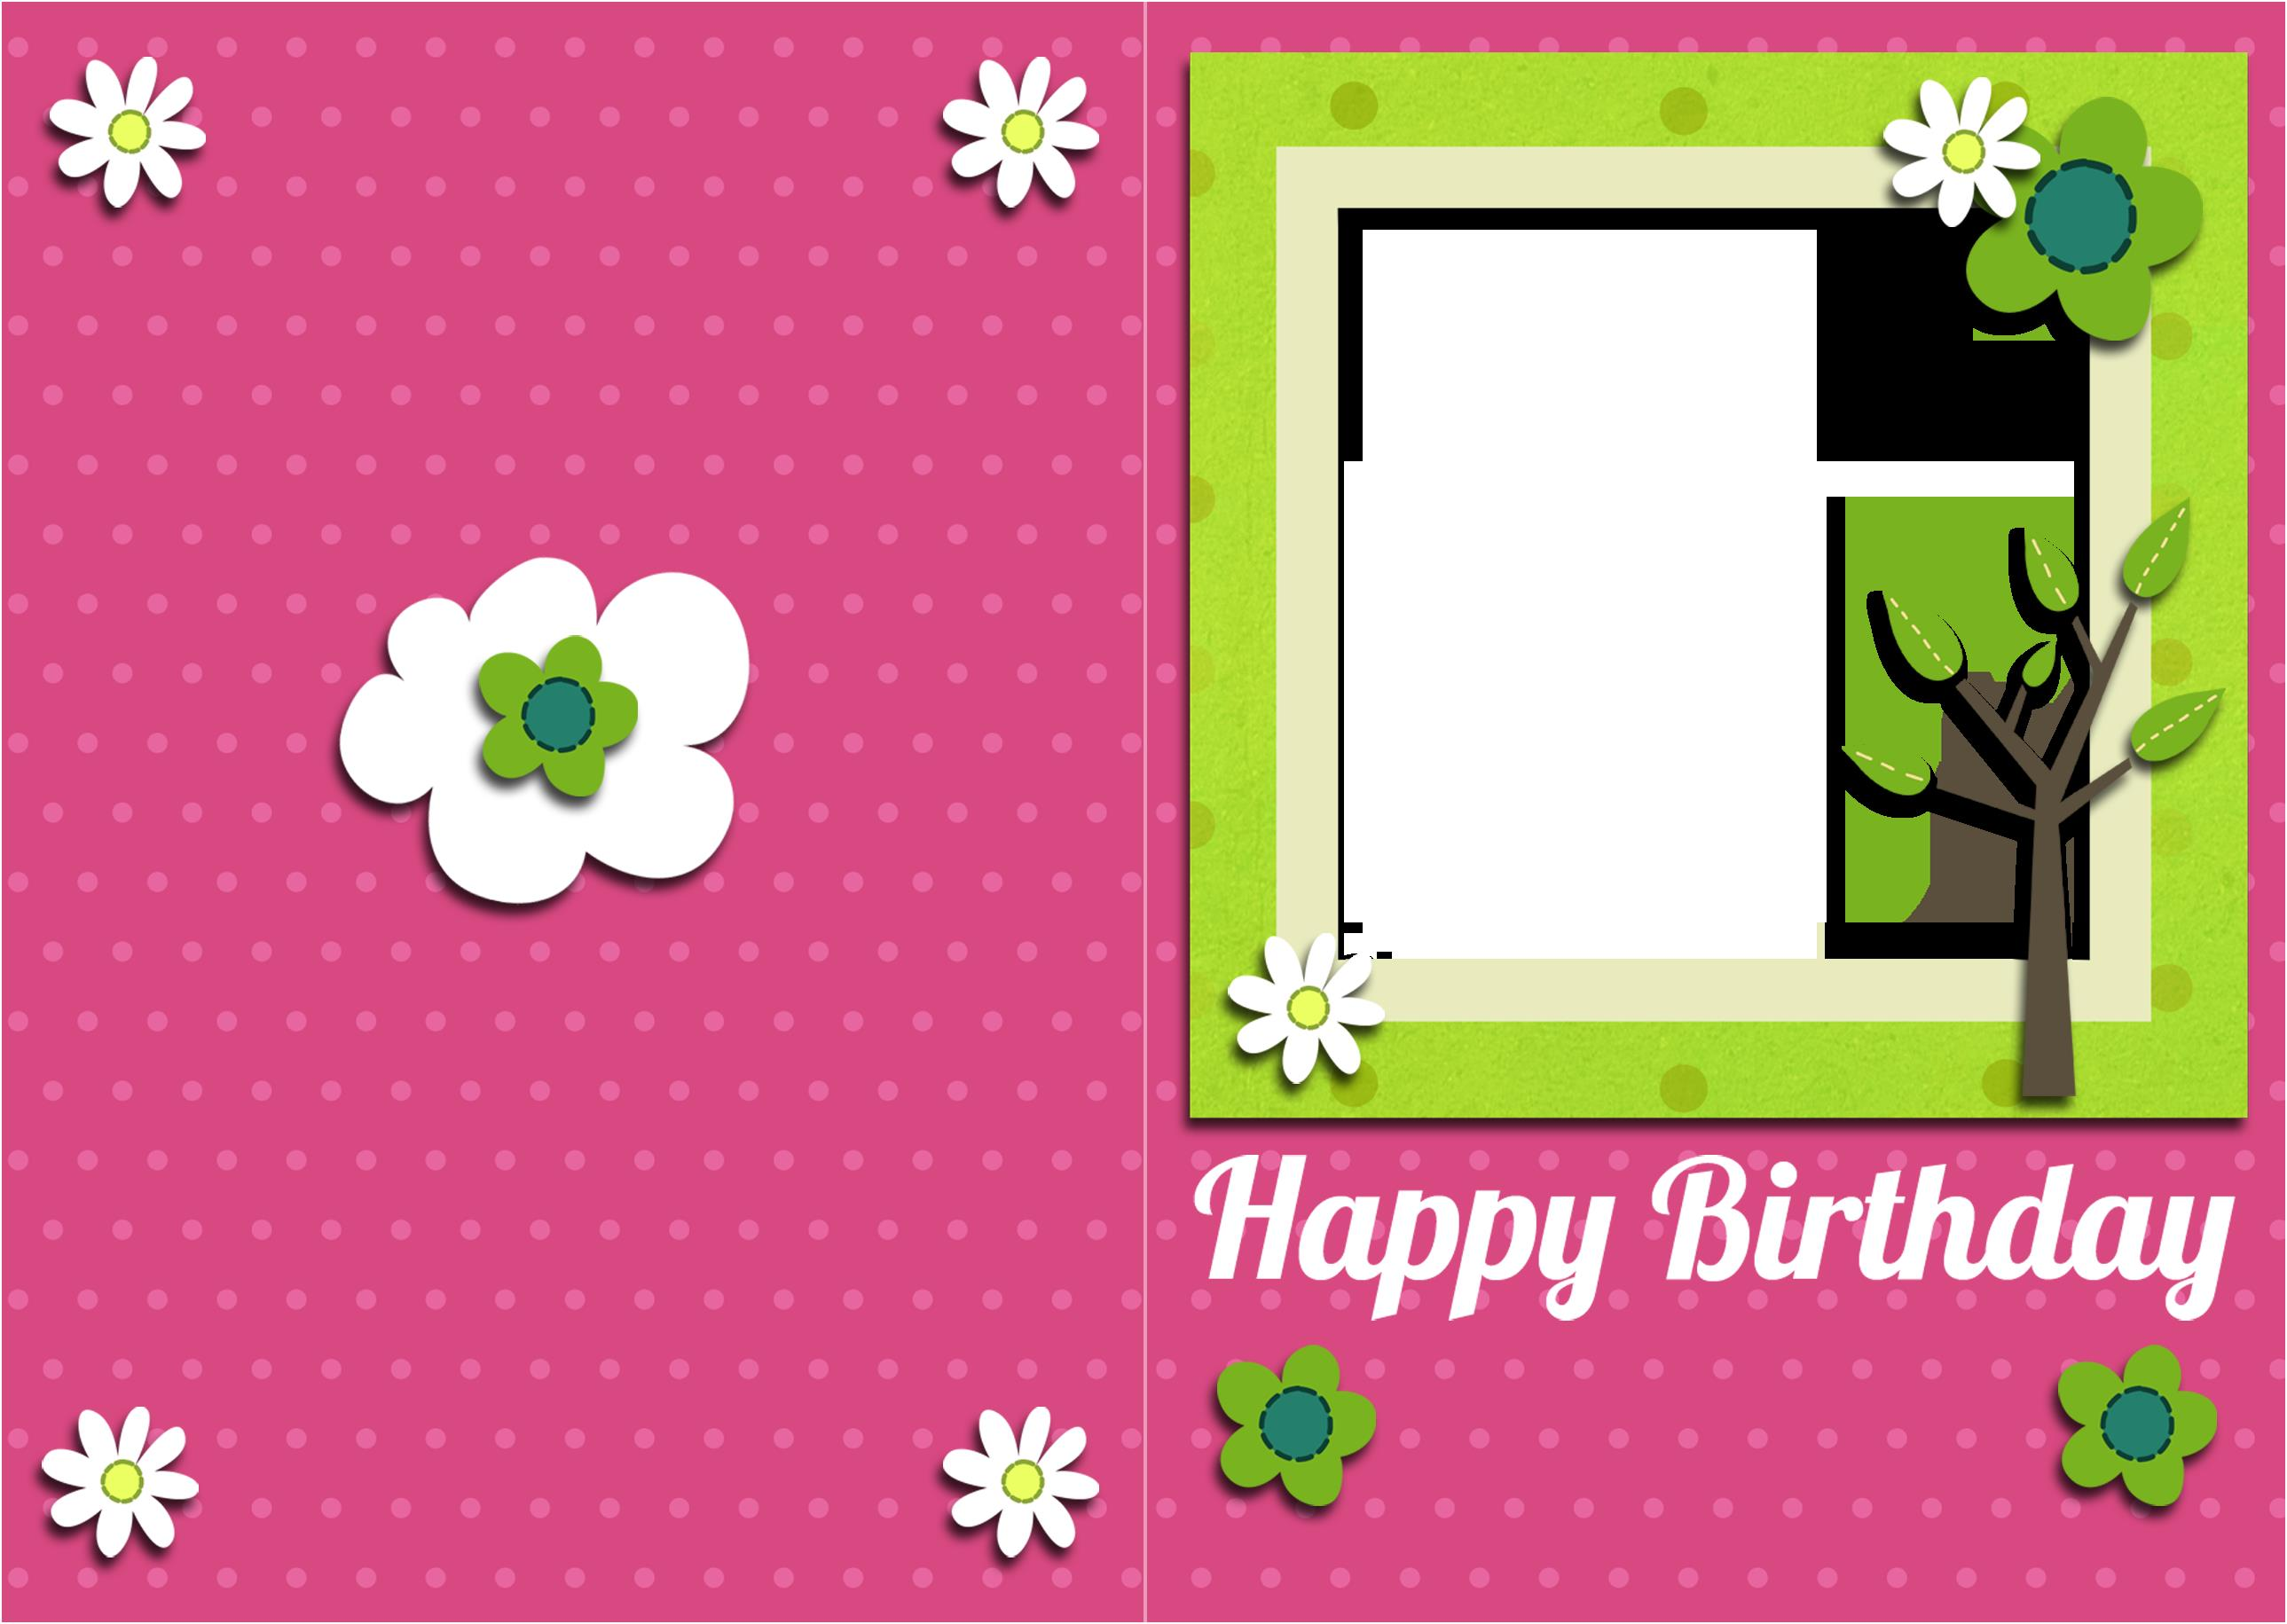 birthday card with pictures free ; happy-birthday-cards-free-her-facebook-him-and-greeting-card-free-funny-online-greeting-cards-free-greeting-cards-funny-online-greeting-cards-free